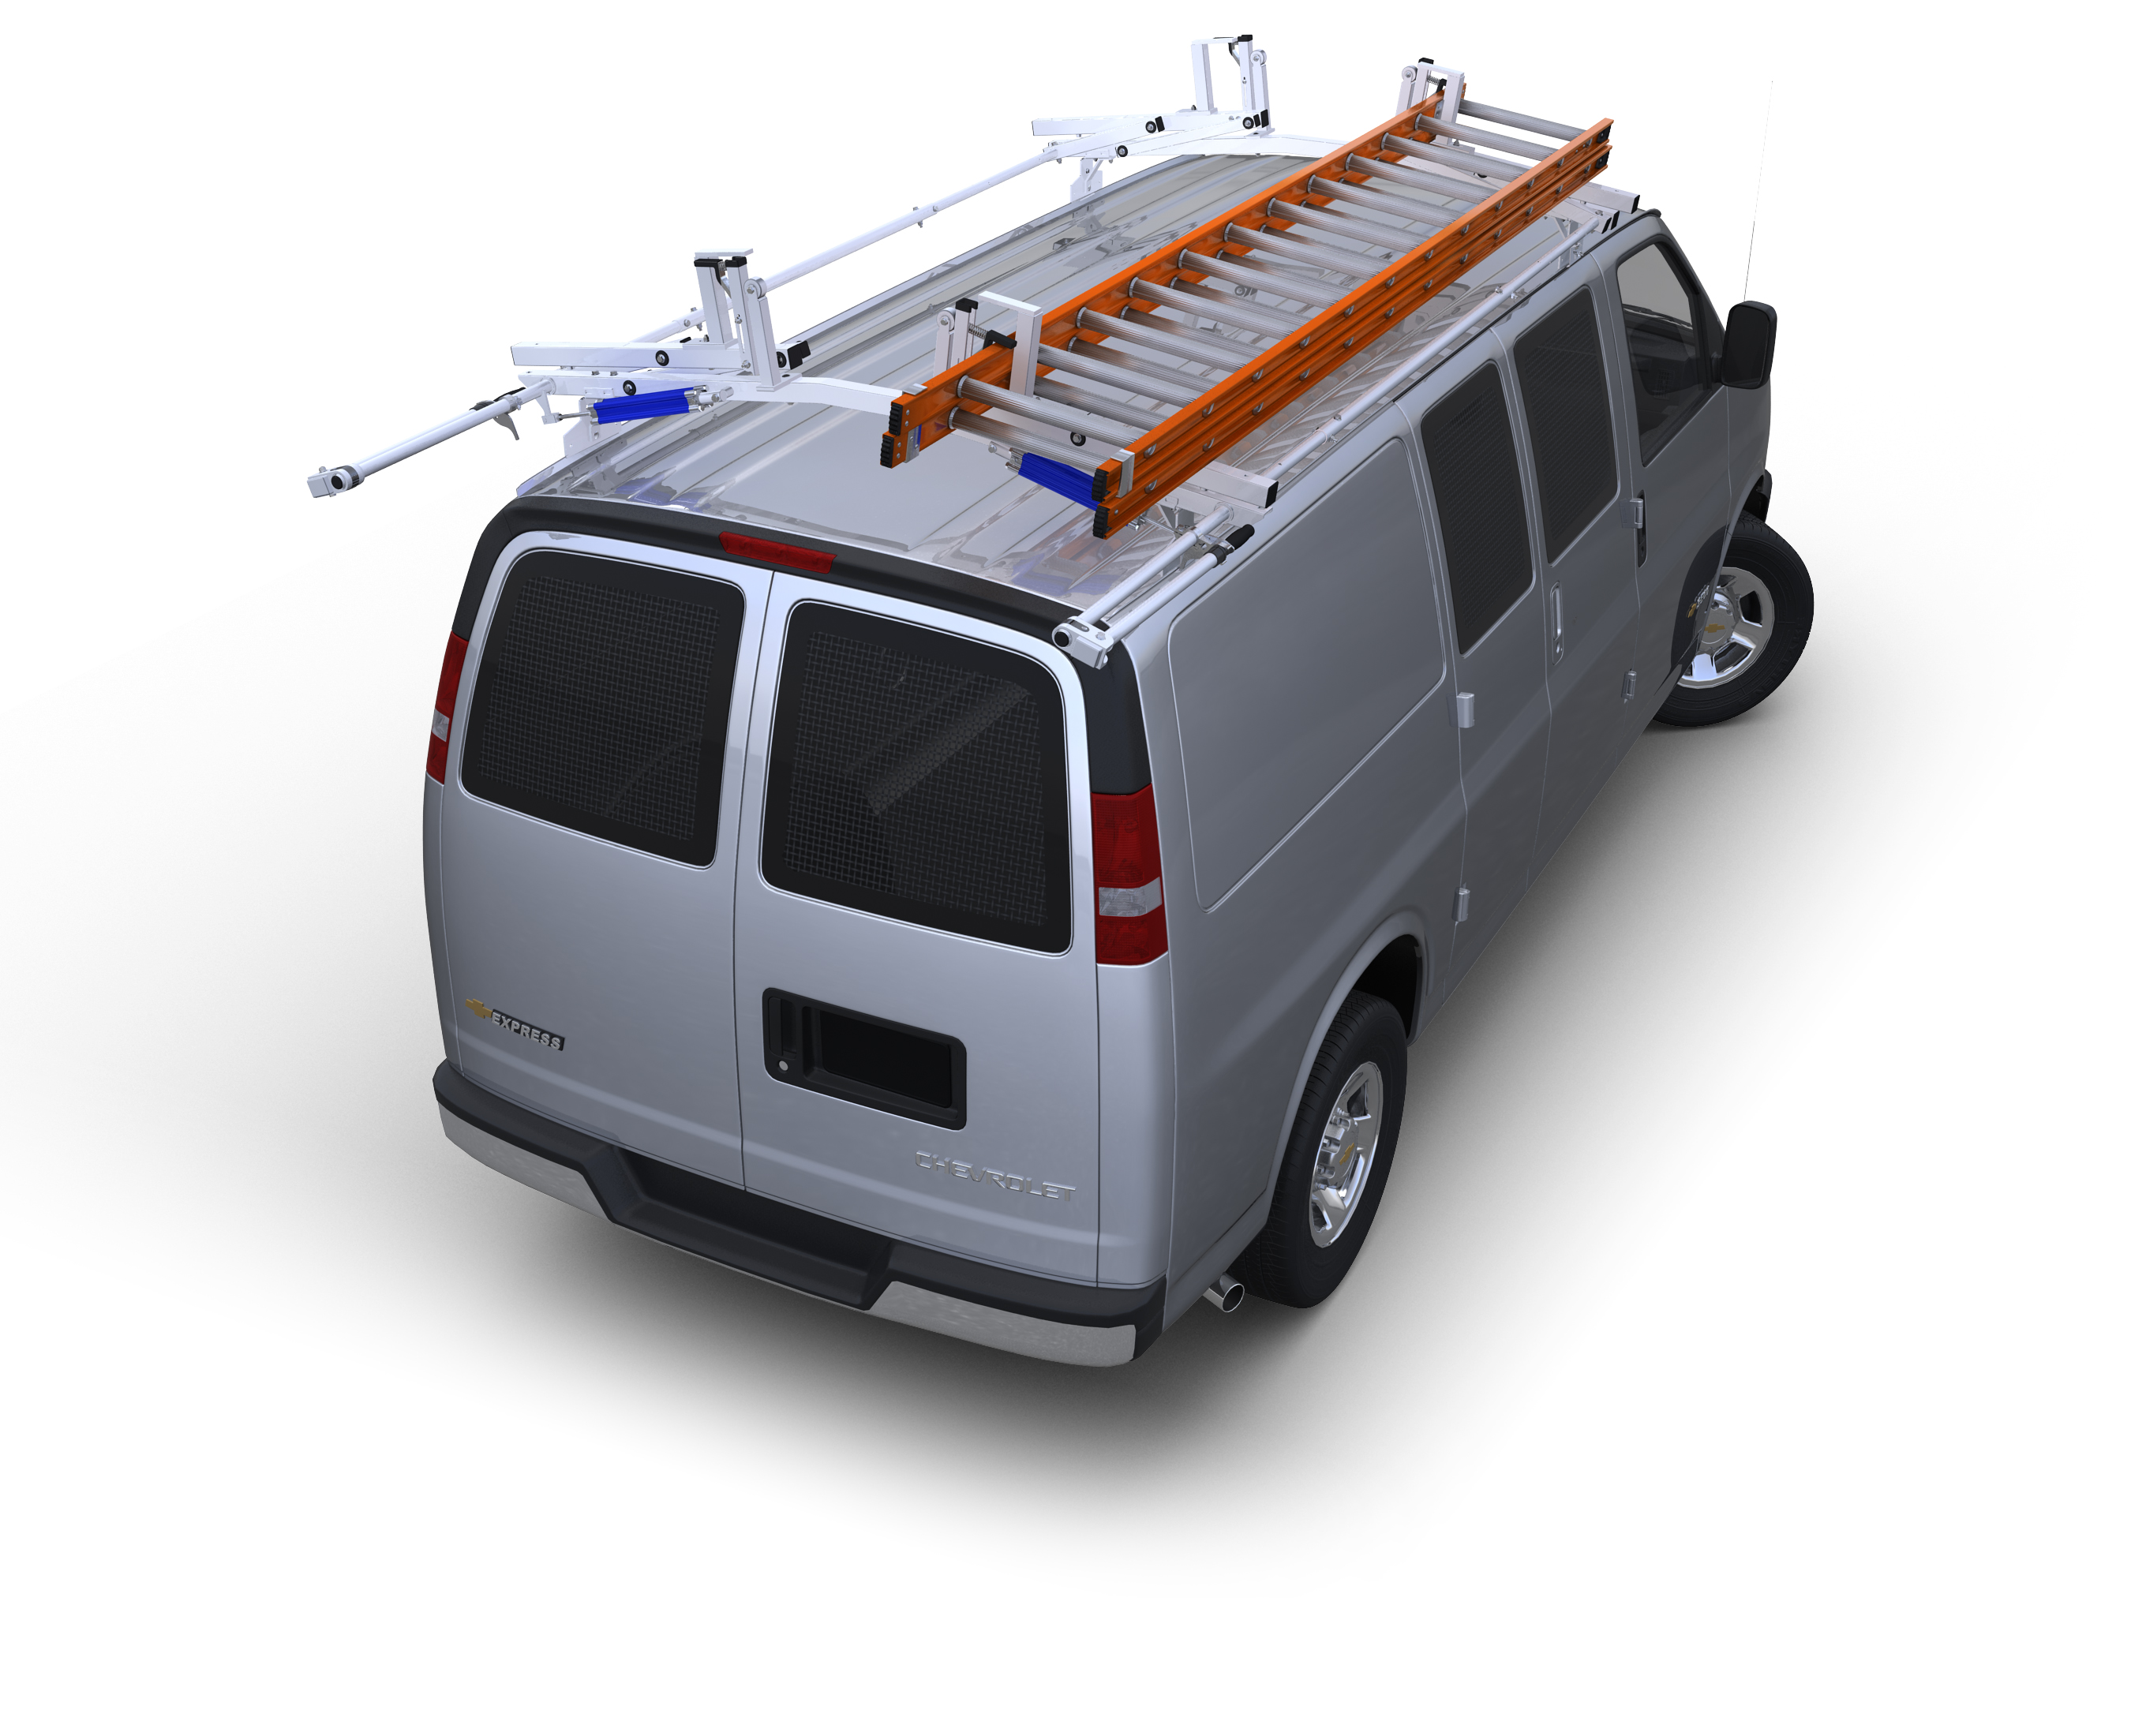 2014 & Newer Transit Connect Long WB Base Van Package, Aluminum Shelving - SAVE $60!